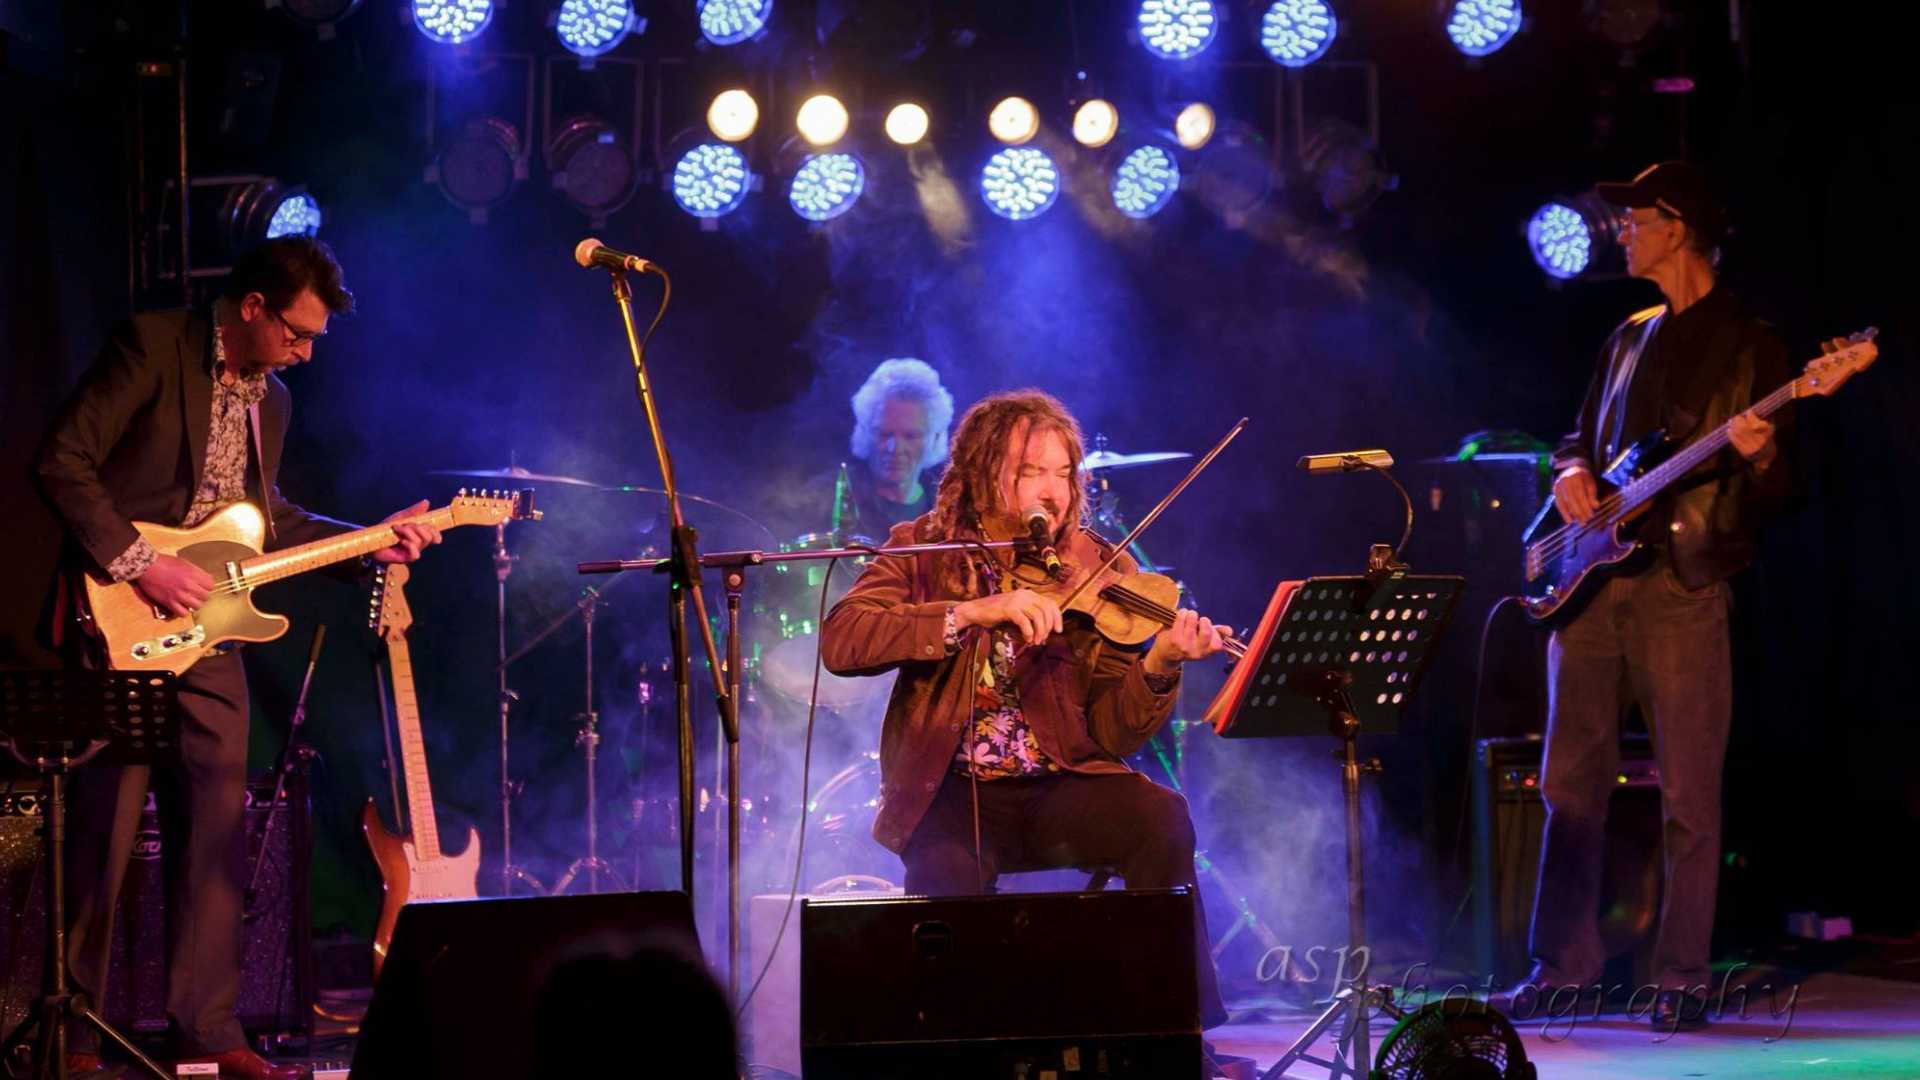 13_Rupert and his band - photo by ASP Photography.png